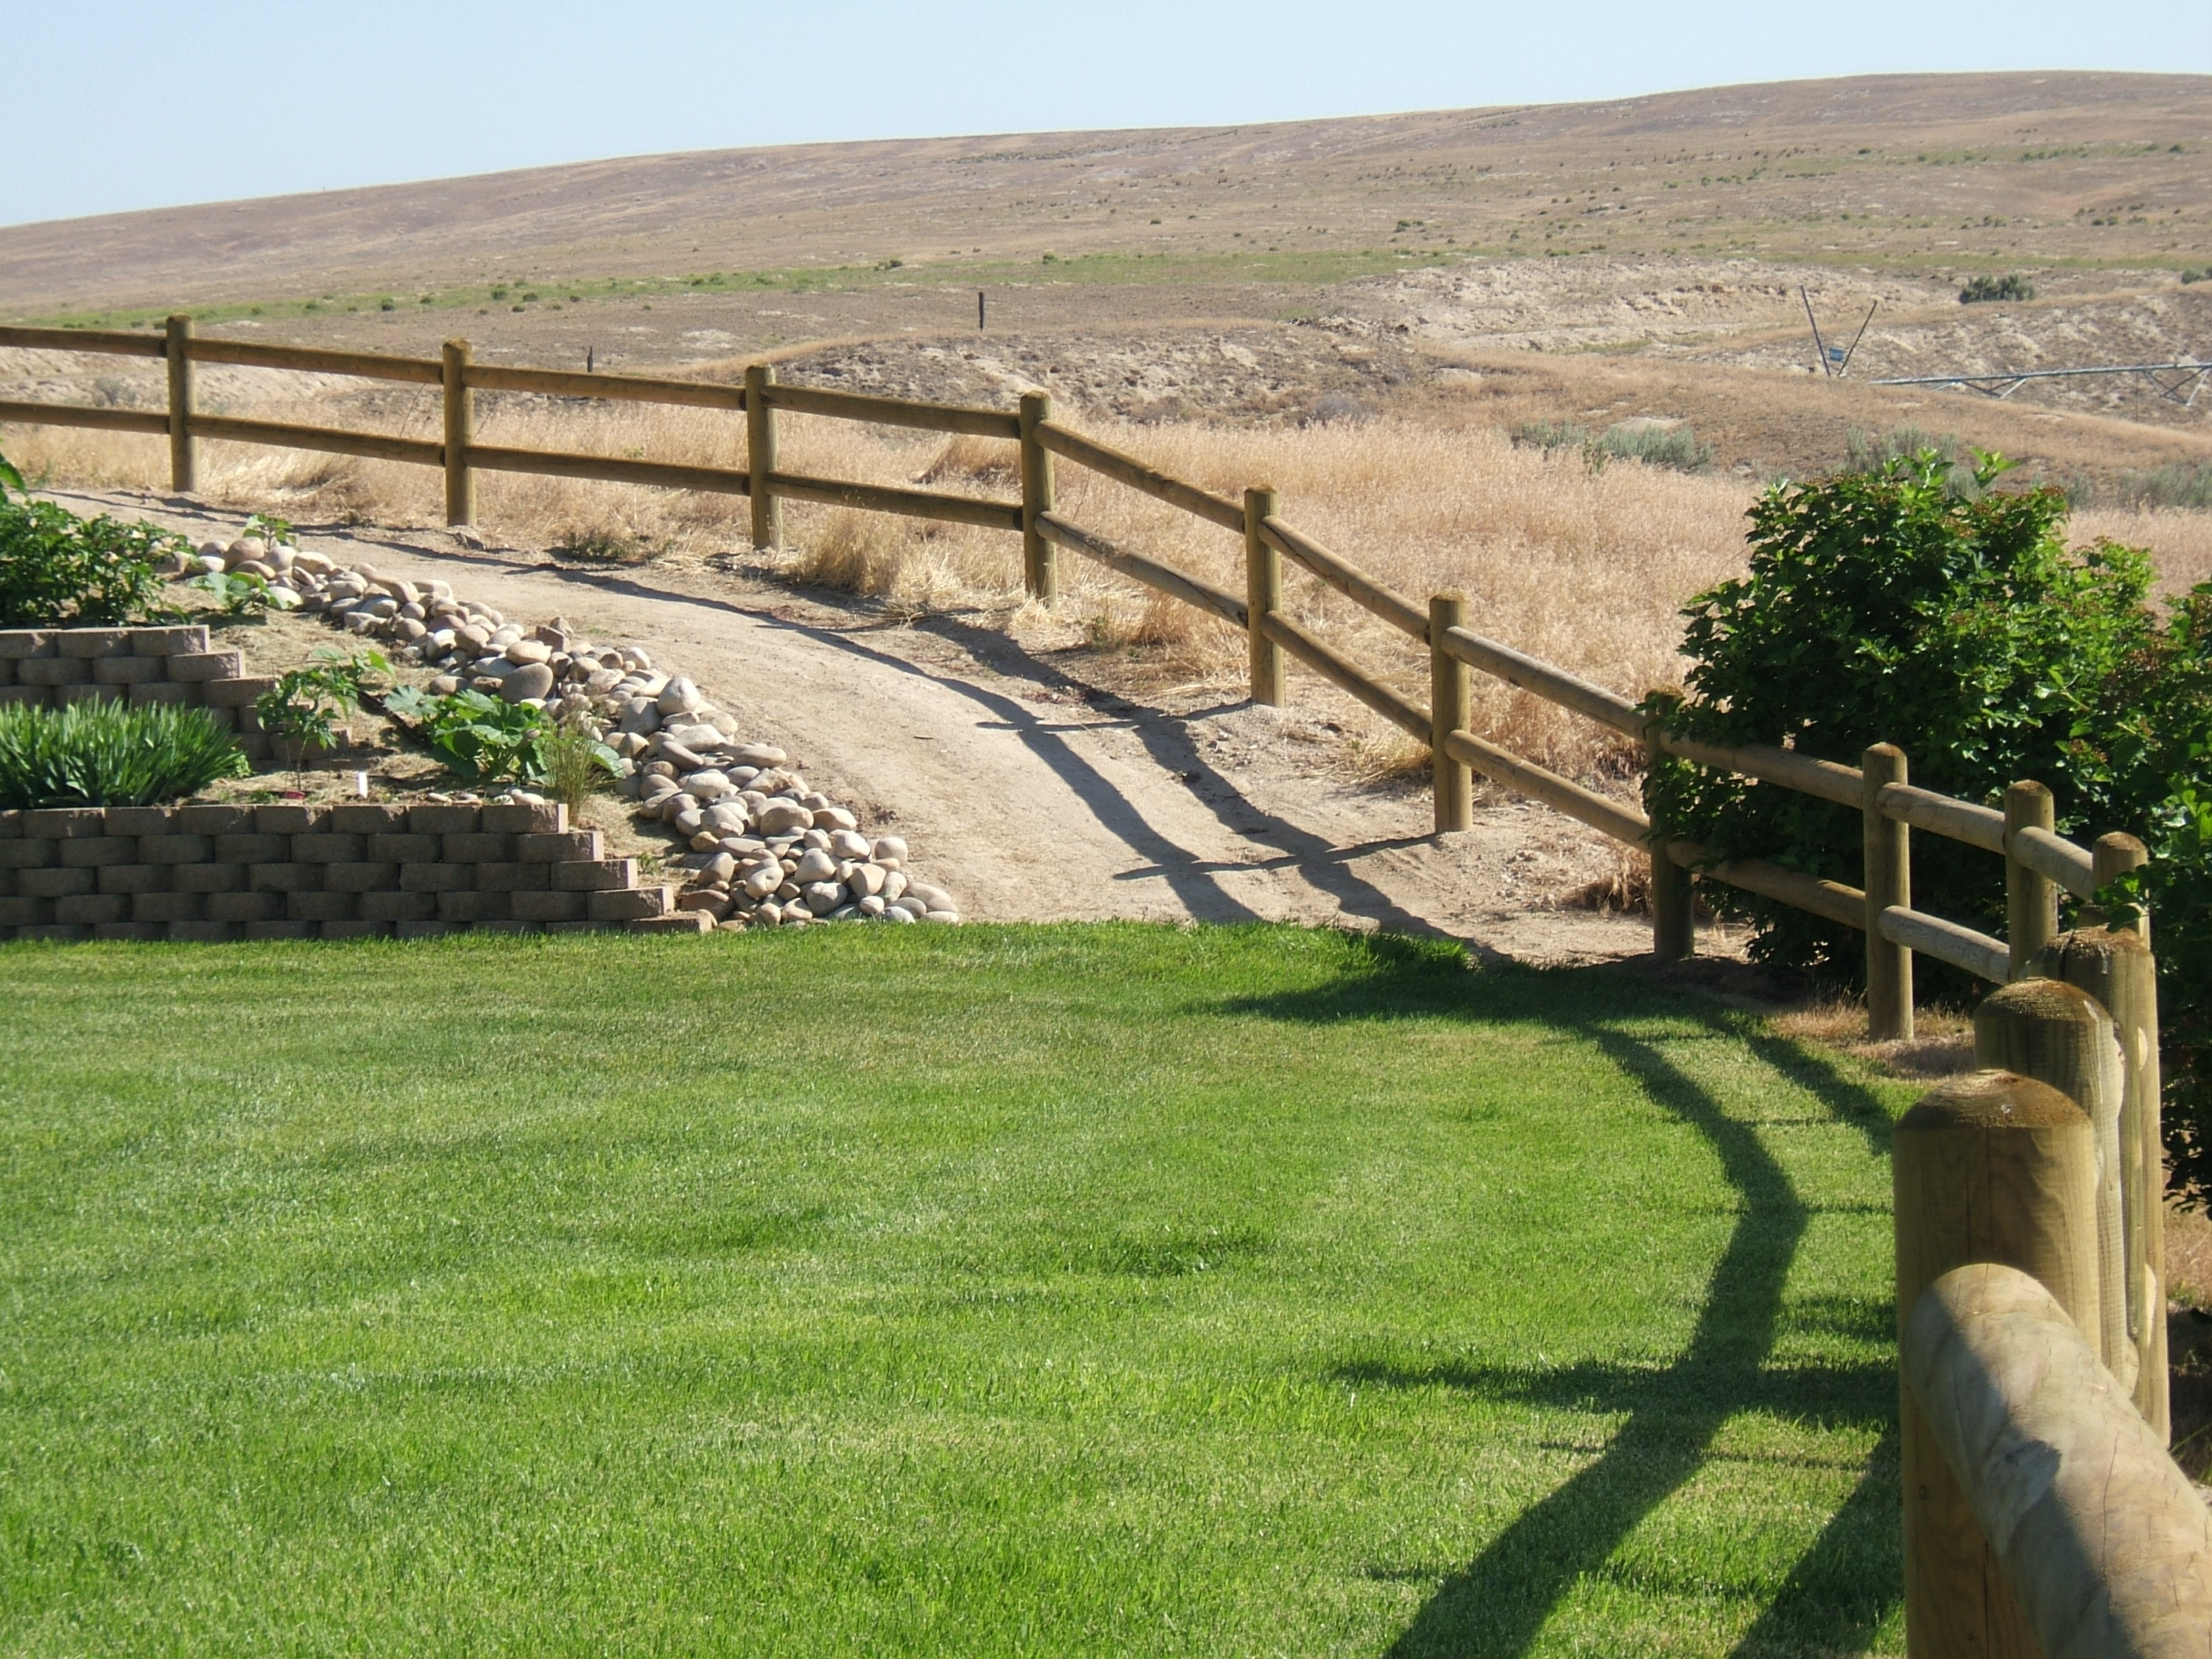 Doweled Wood Fences Fencing Installations Parma Post